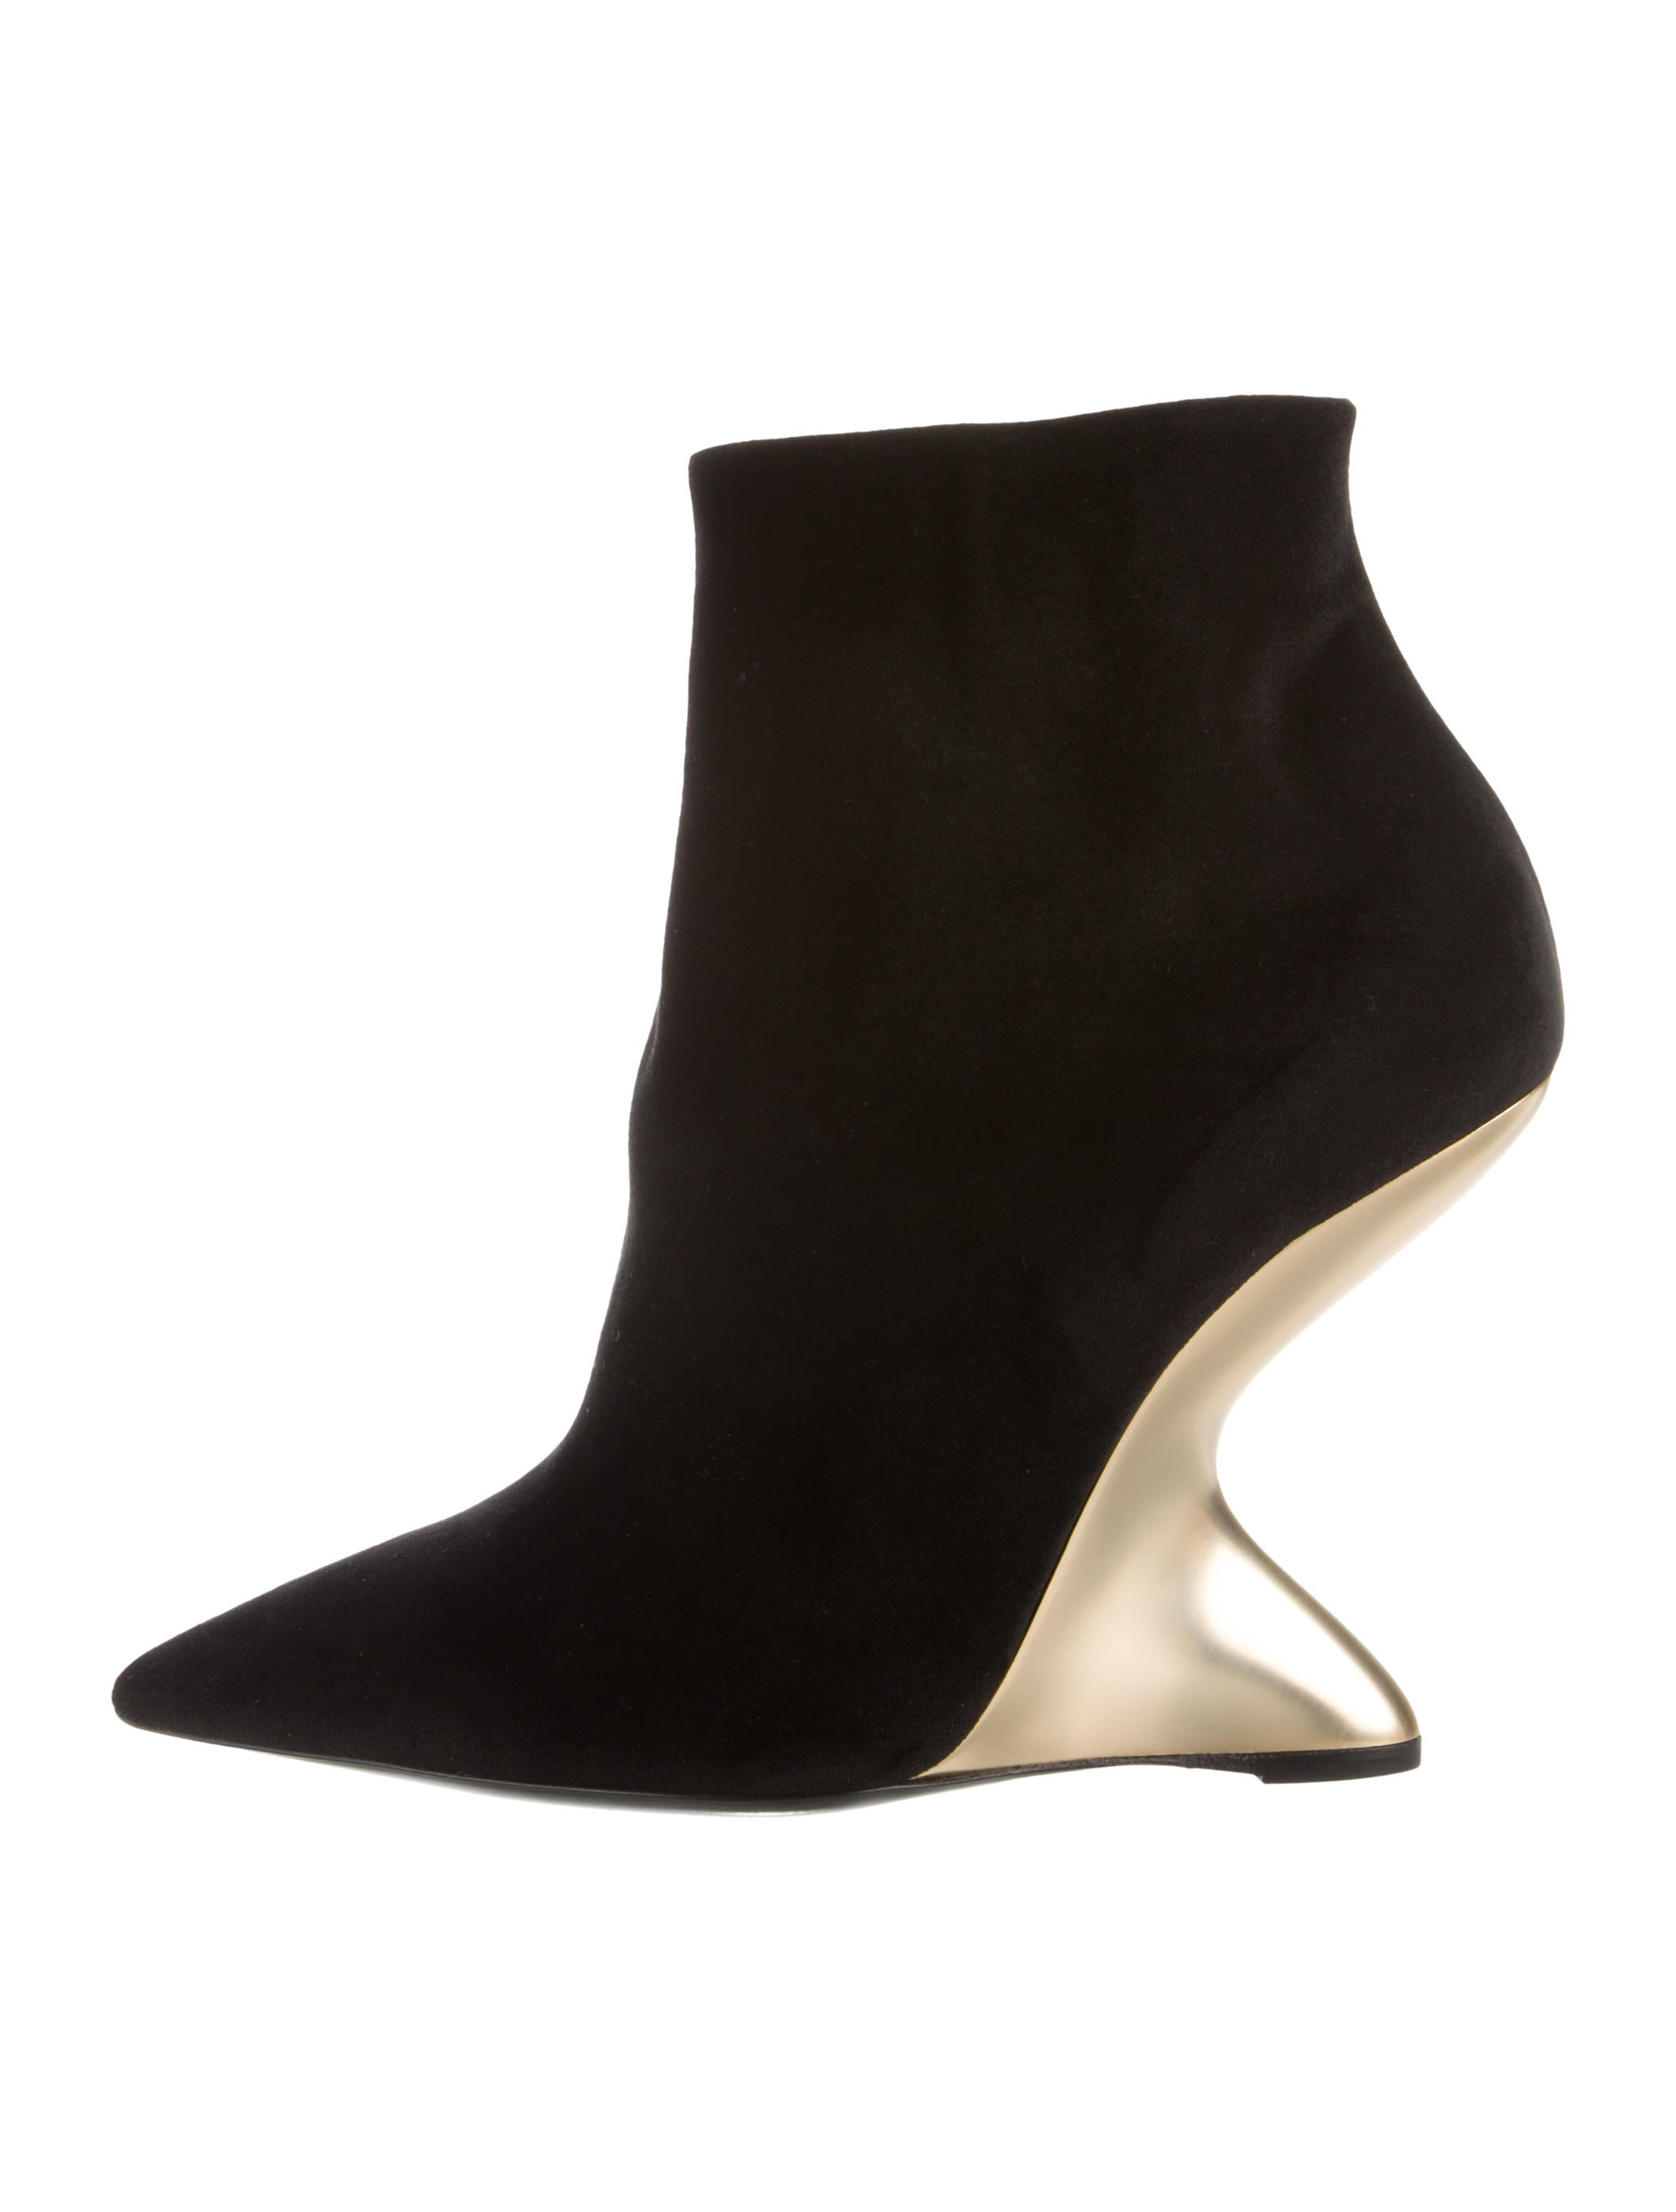 nicekicks online Salvatore Ferragamo Pointed-Toe Velvet Ankle Boots w/ Tags free shipping fast delivery DAVdDl6